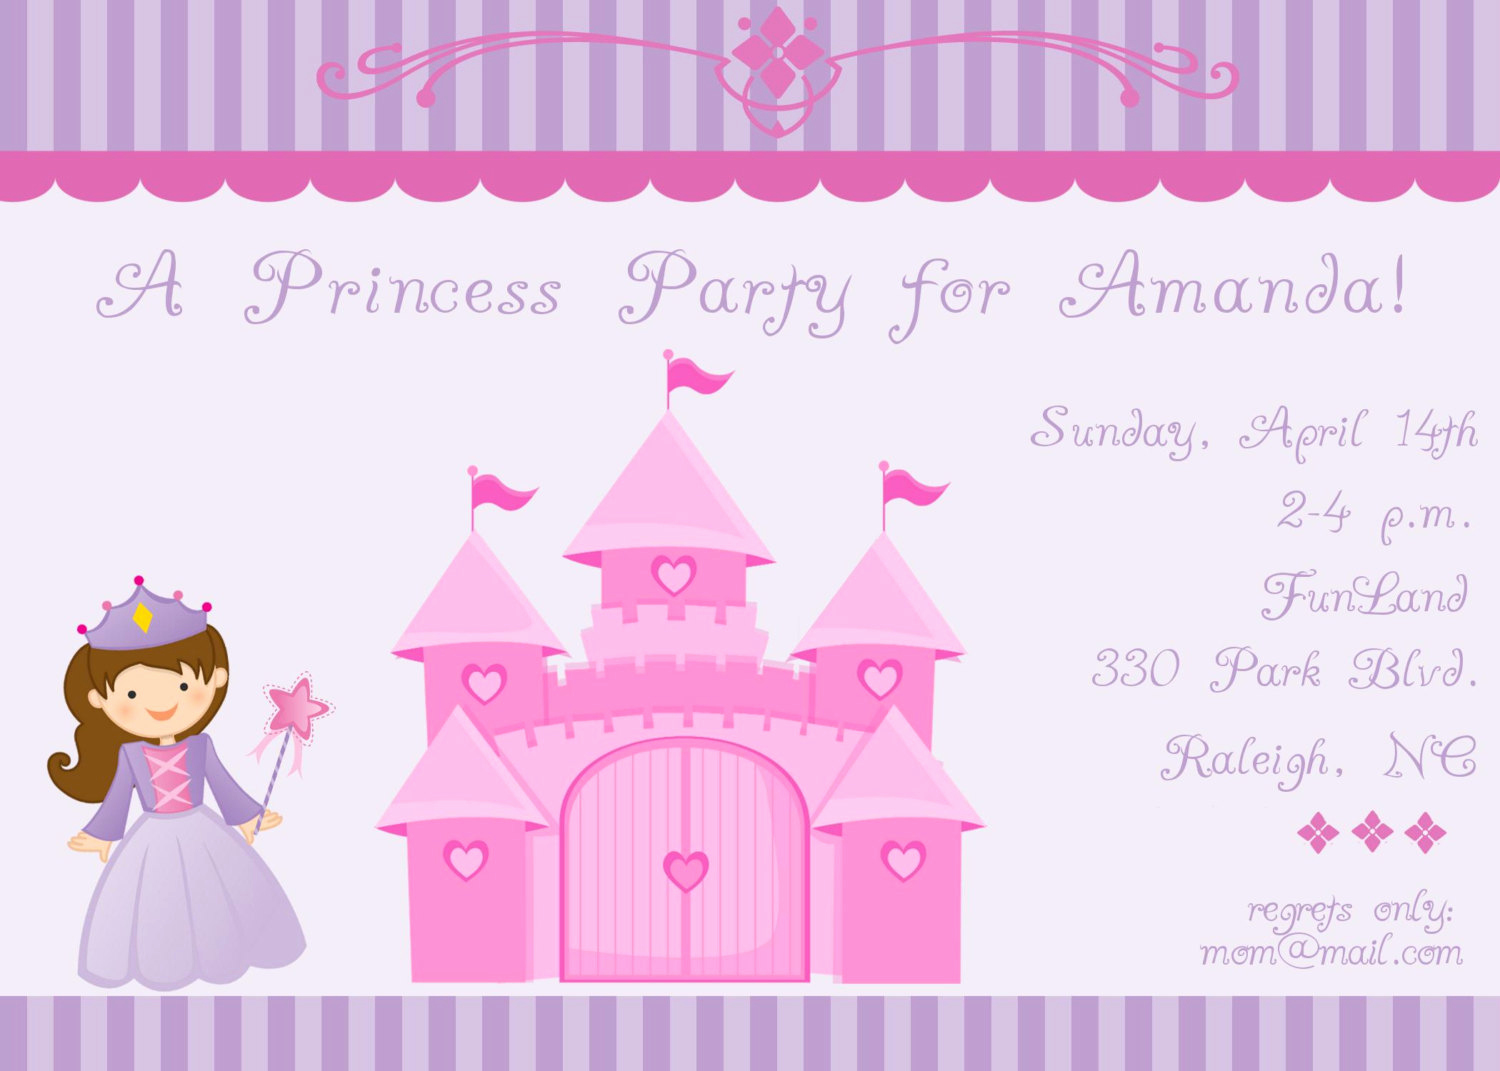 Princess Party Invitation Ideas Awesome Princess and Castle Birthday Party Invitation